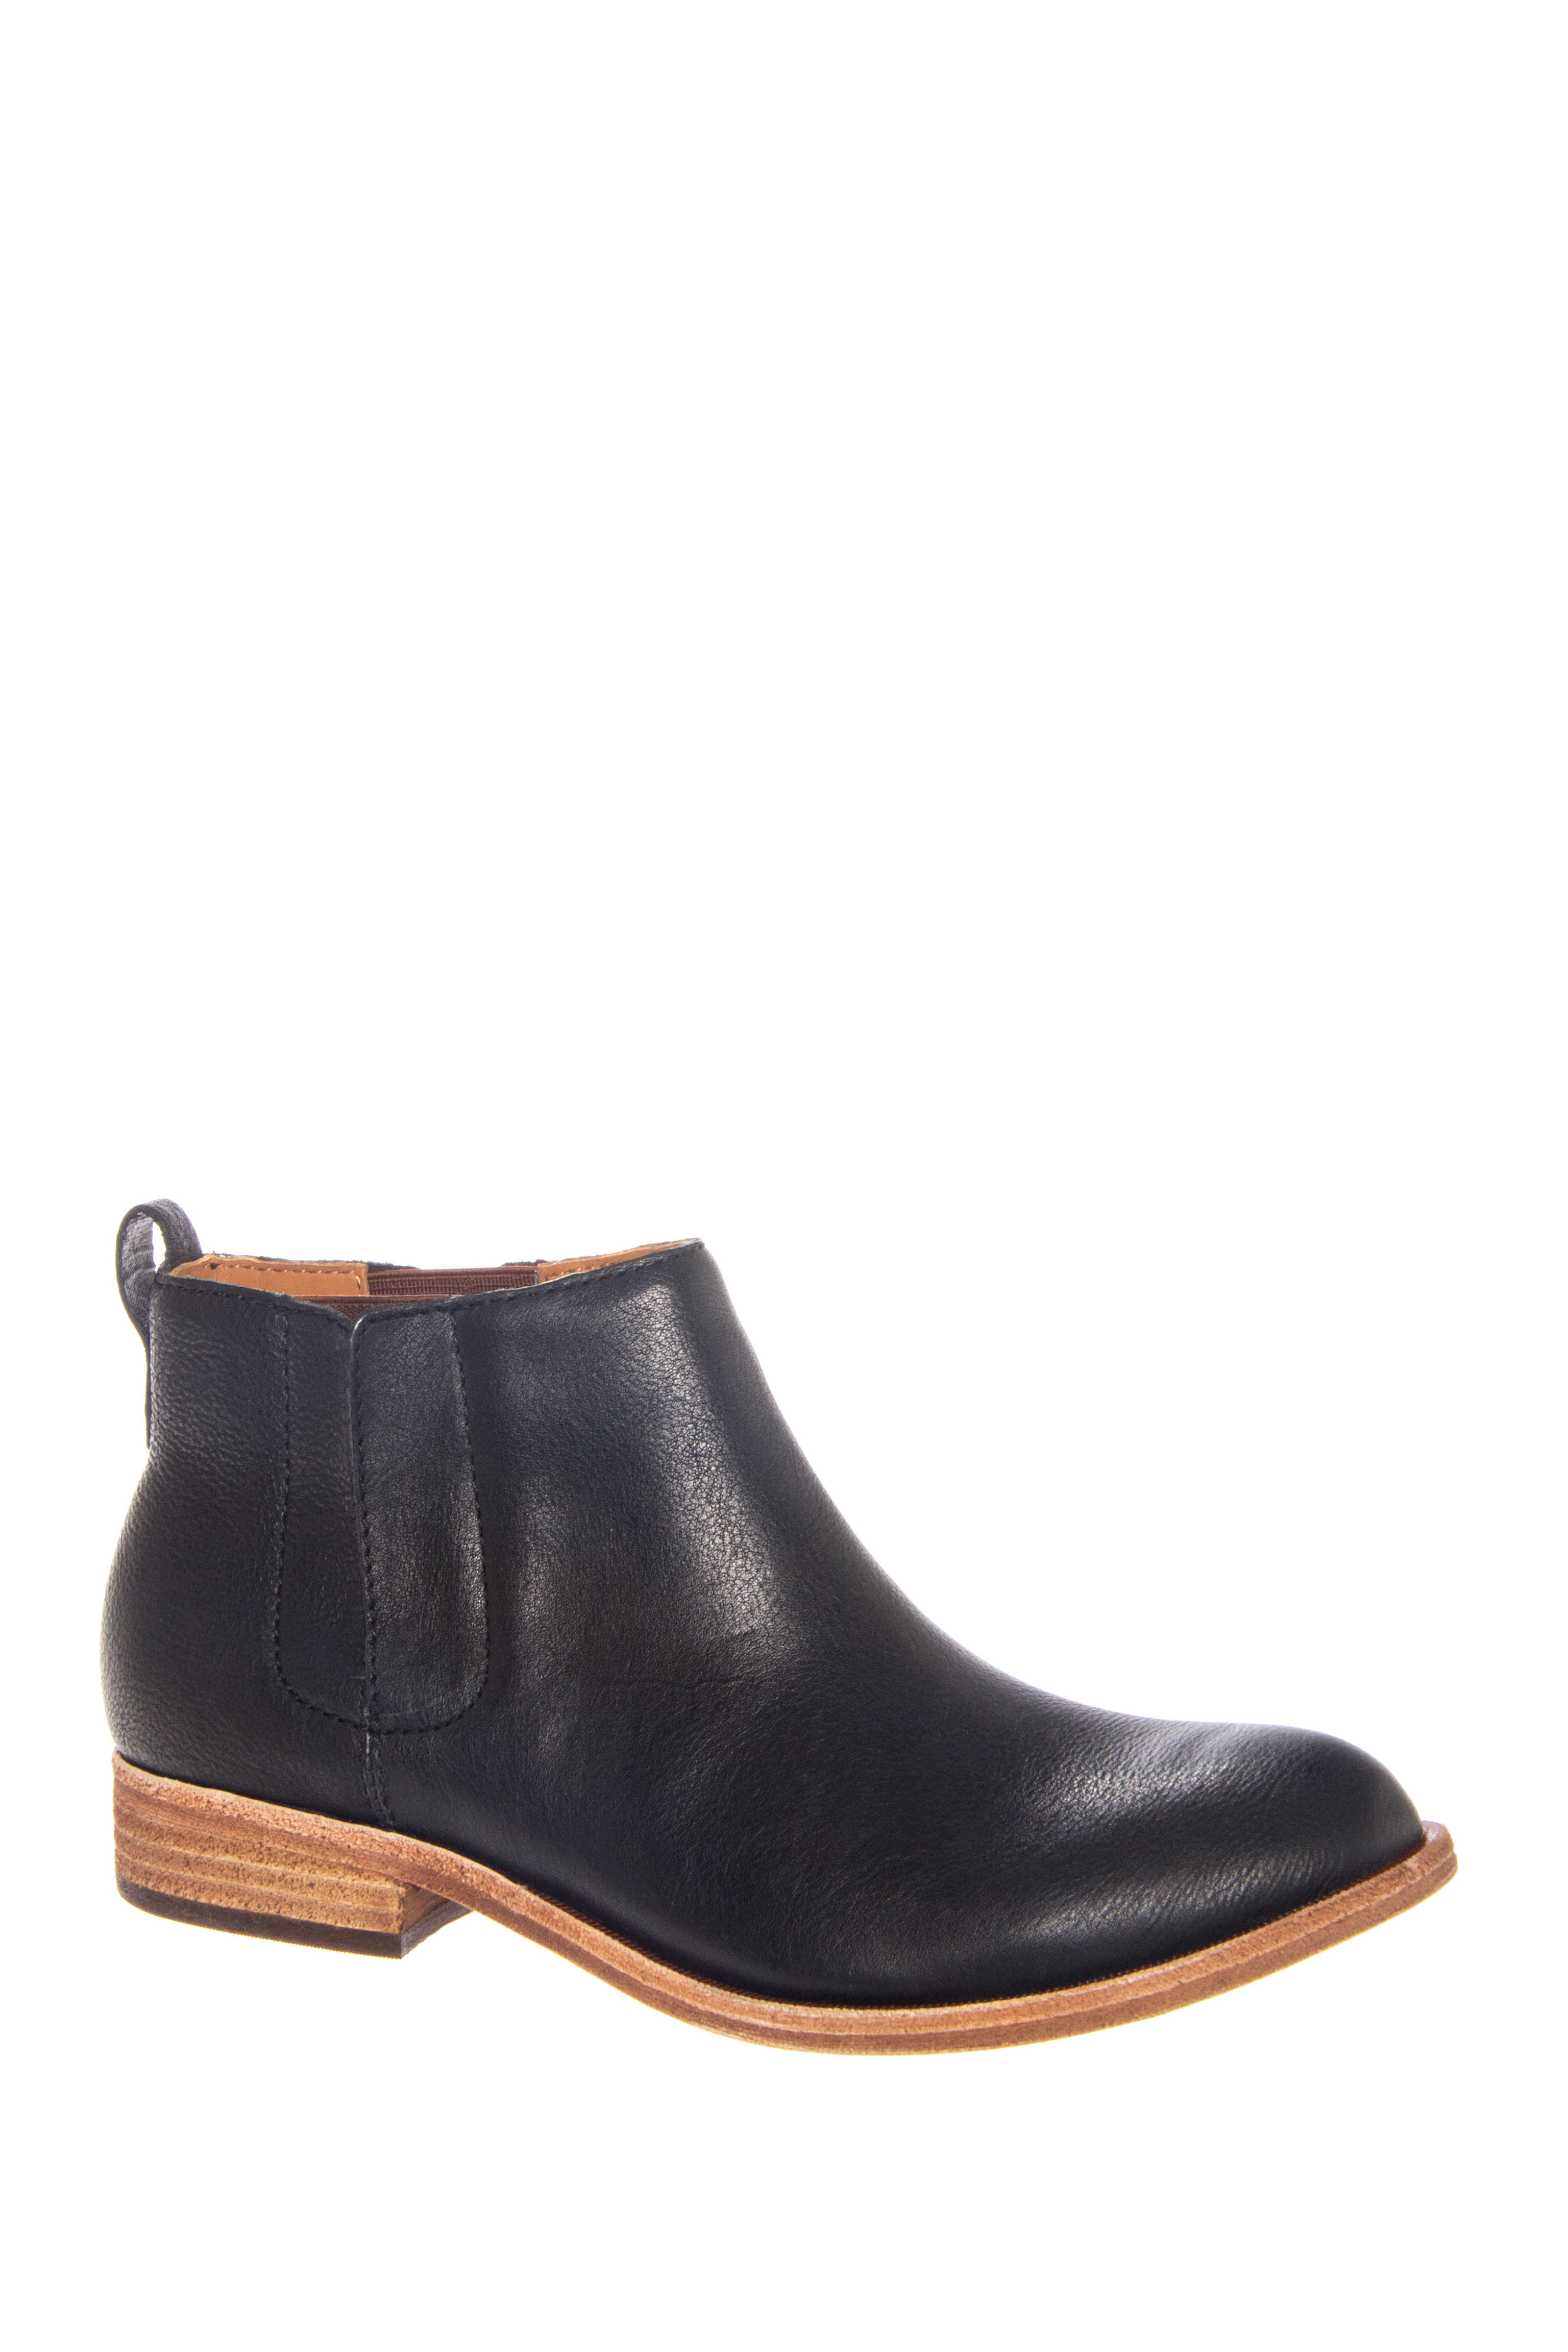 Kork-Ease Velma Low Heel Ankle Boots - Black